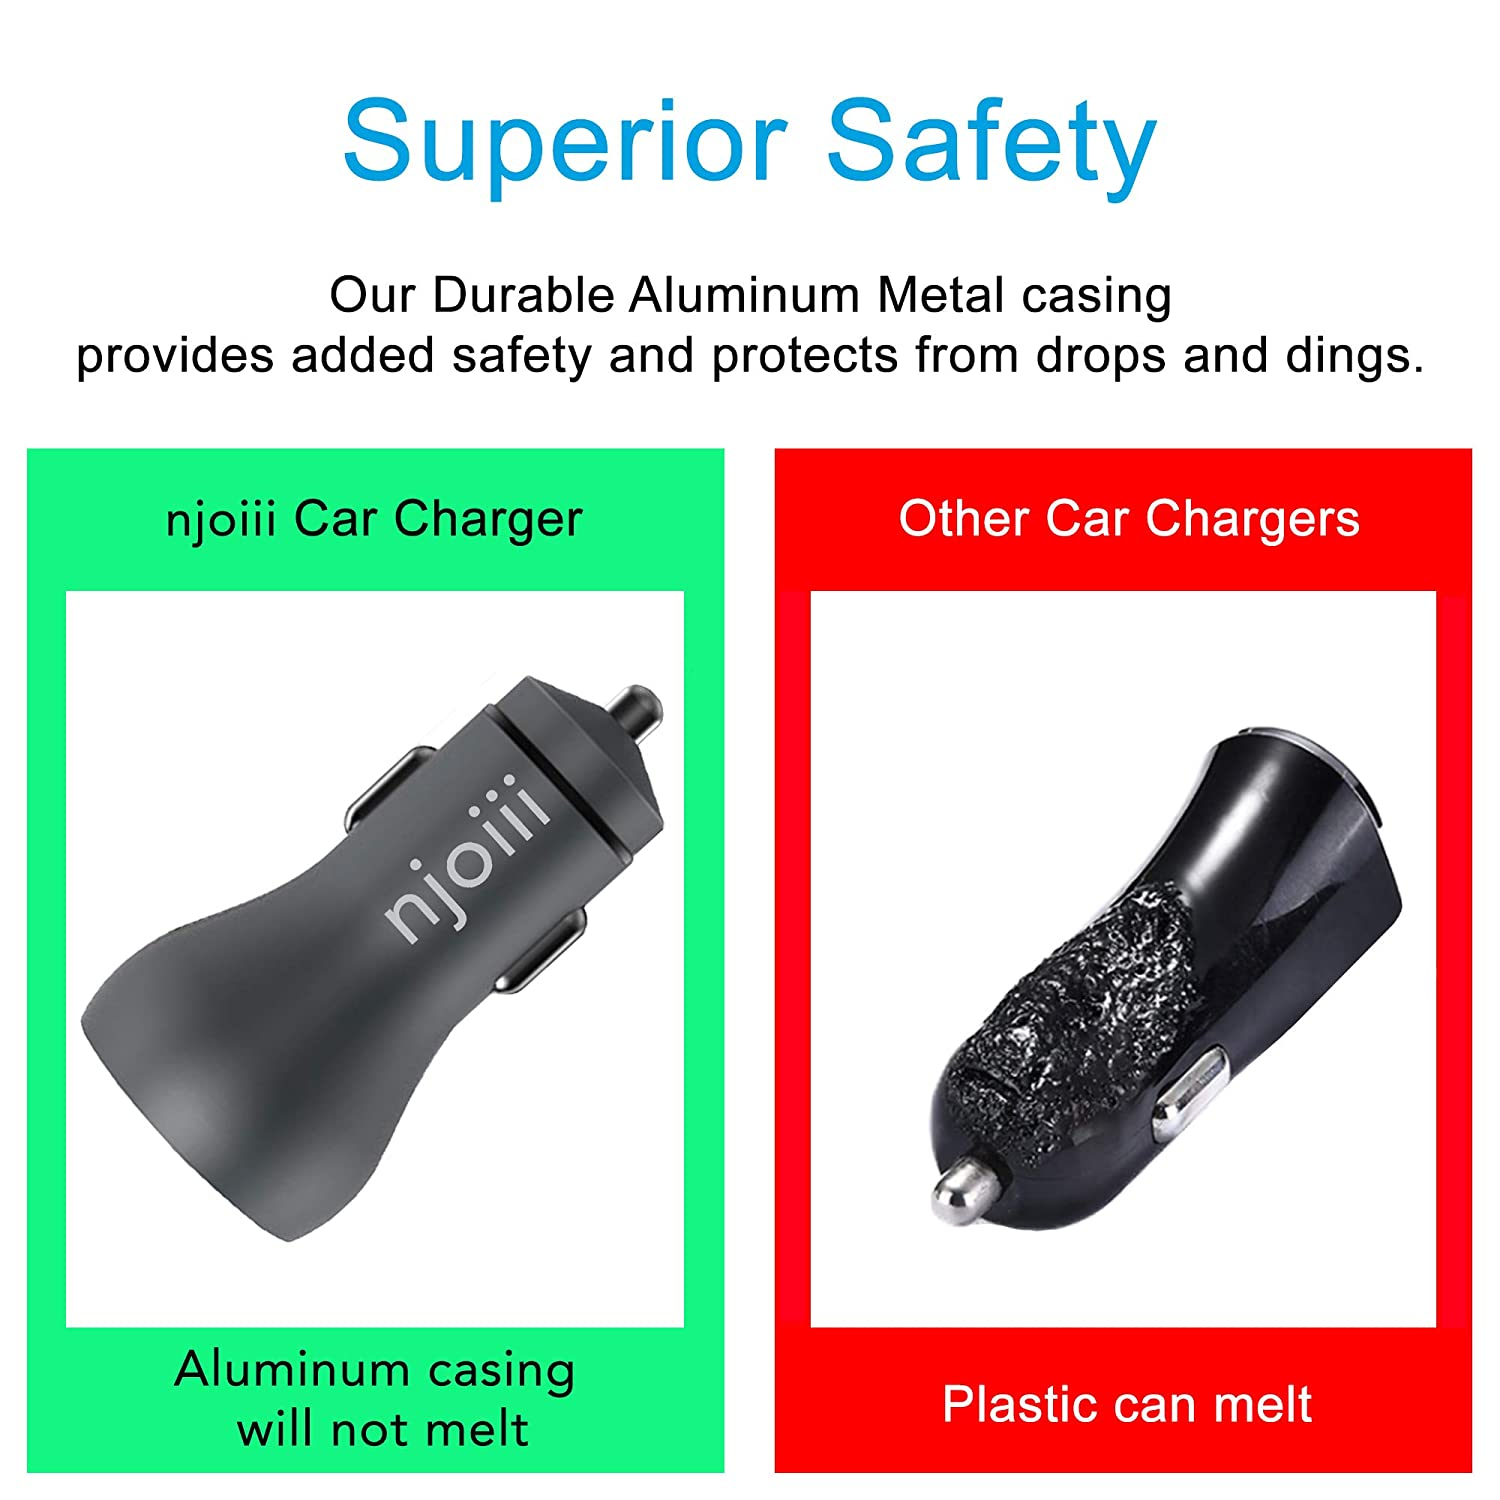 Mobile Phone Interior Metal Accessory Adapter for Vehicle Smart Apple with Qualcomm Quick Charge 3.0 Car Charger Njoiii Fast Android Devices 30W//5.4Amp Output Dual Port USB RED Portable